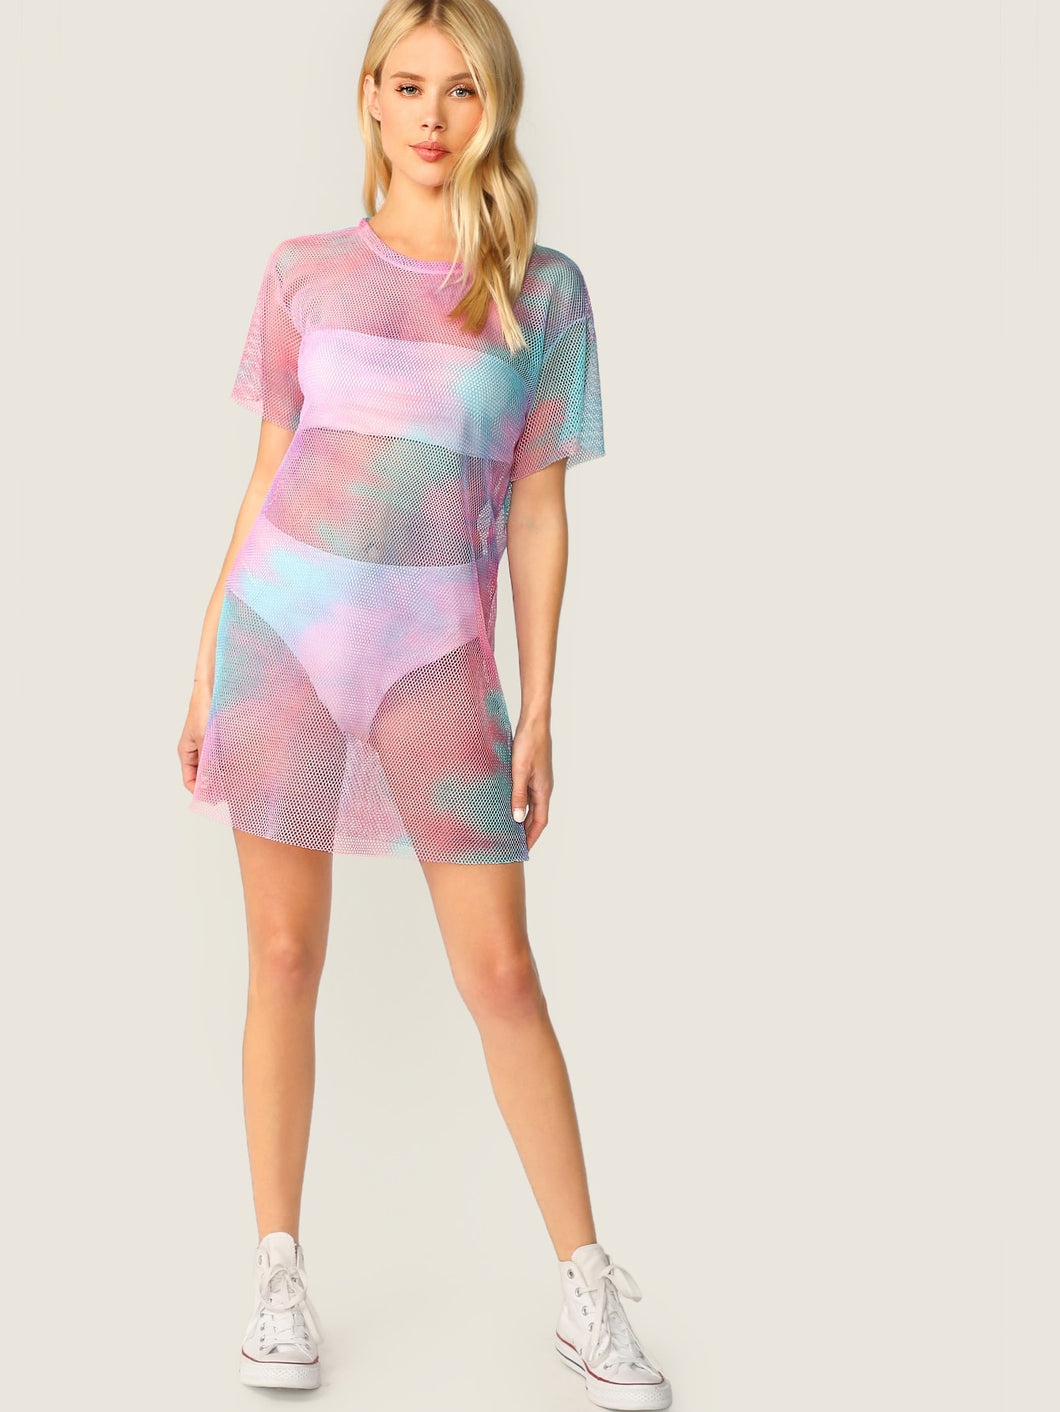 Tie Dye For Mesh Dress/Swimsuit Cover-Up